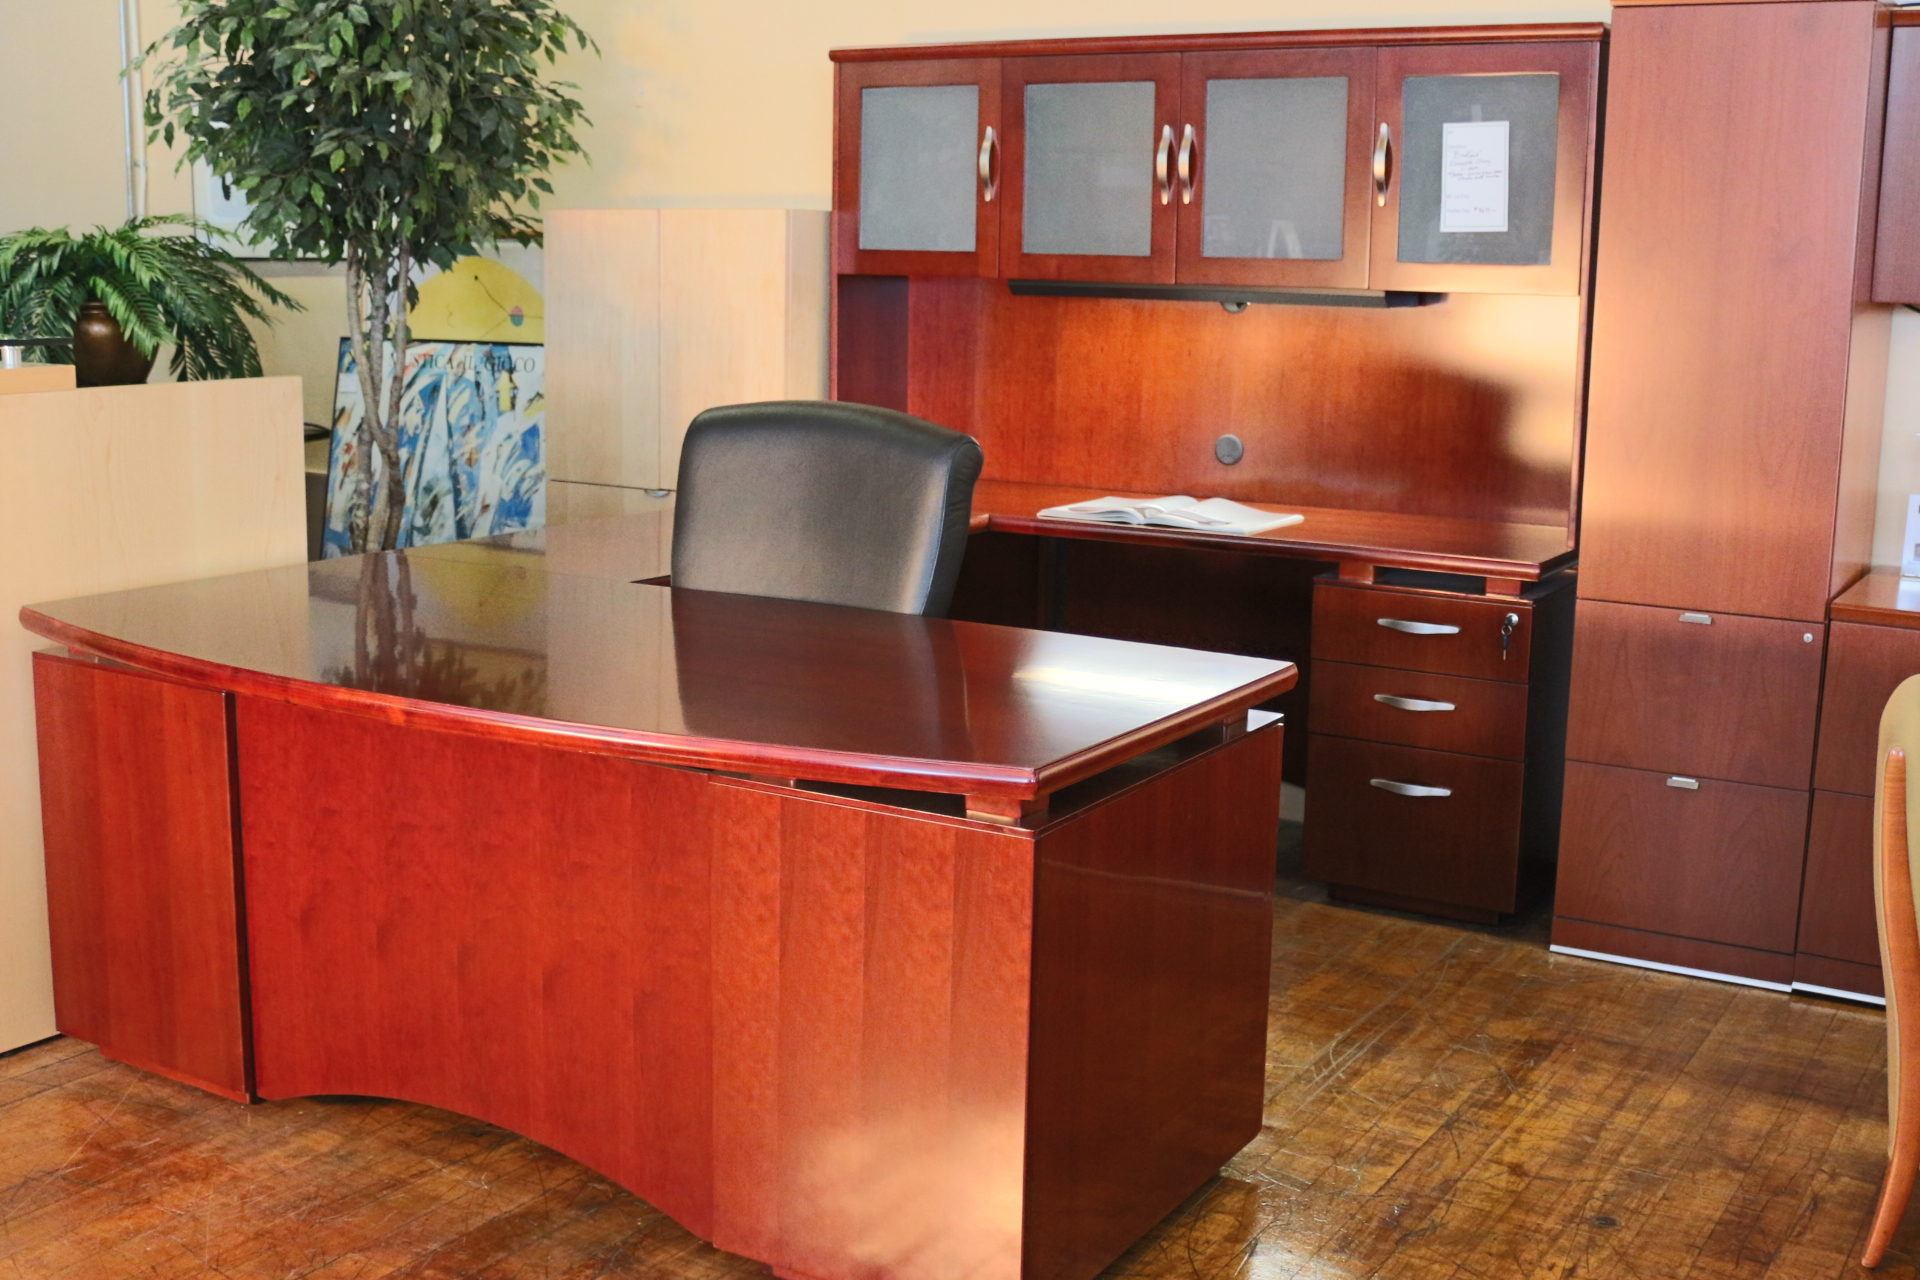 peartreeofficefurniture_peartreeofficefurniture_img_0481.jpg